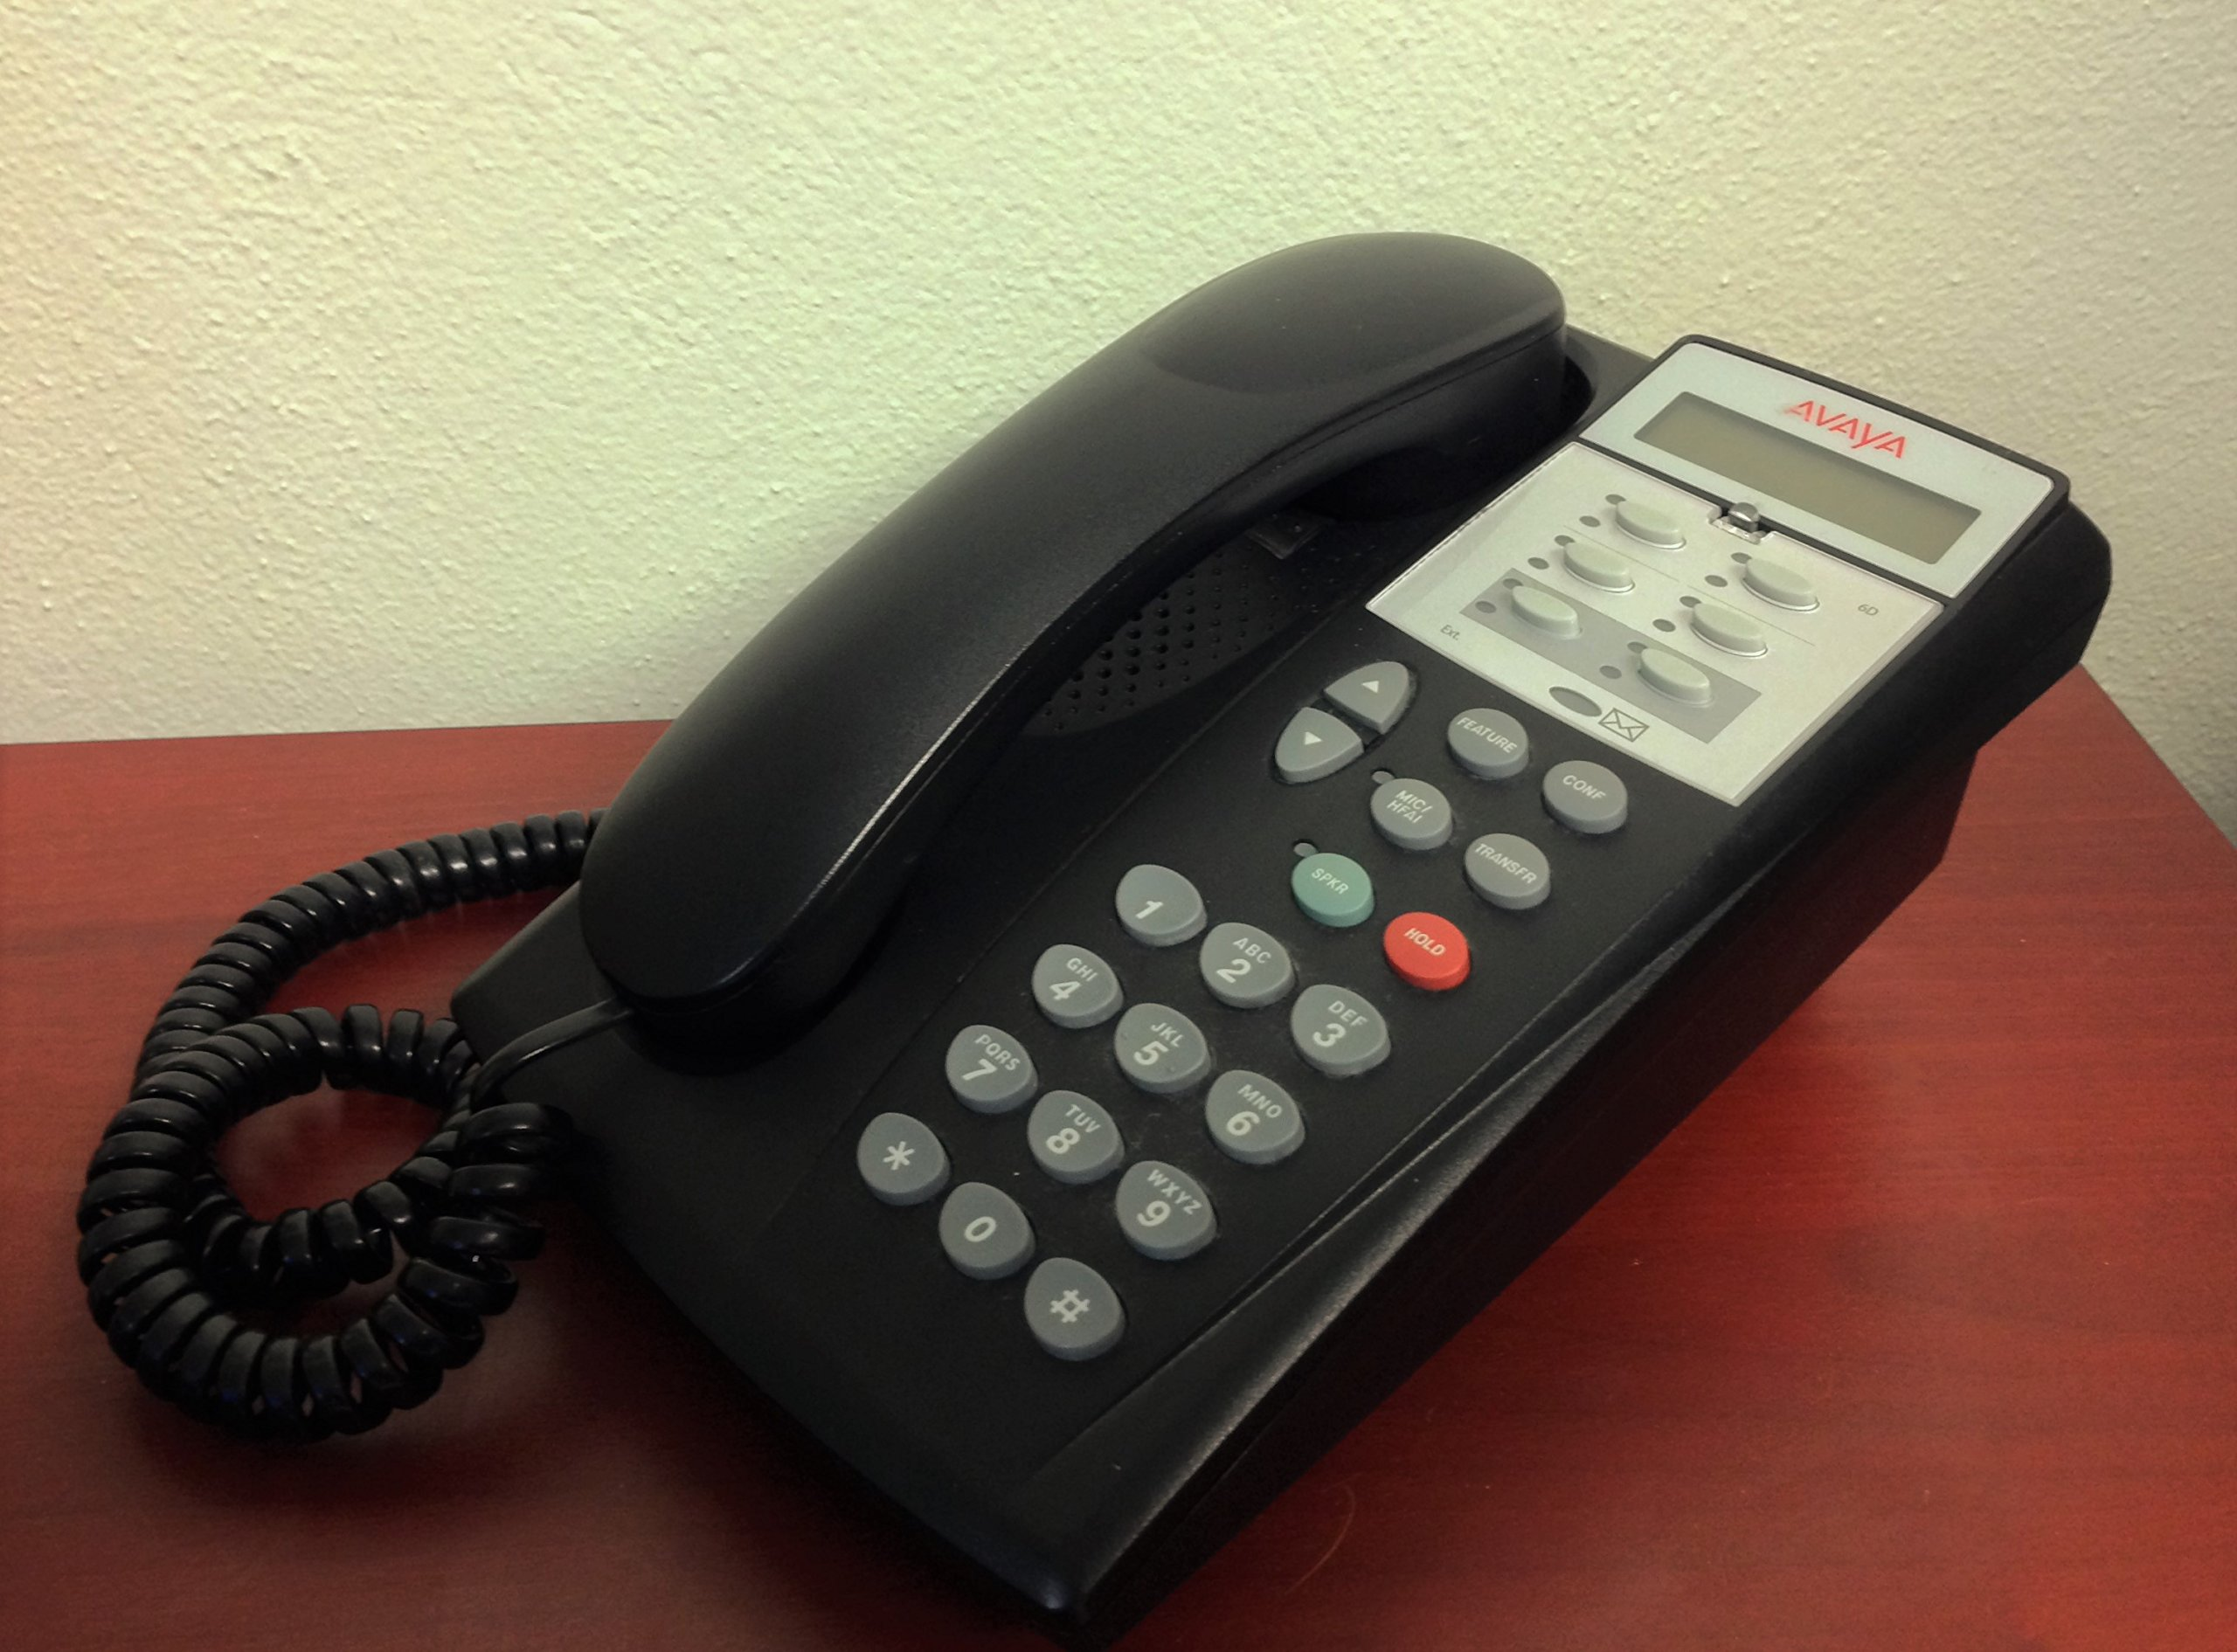 Partner 6D Series 2 Telephone - Black (700340169, 700419971)